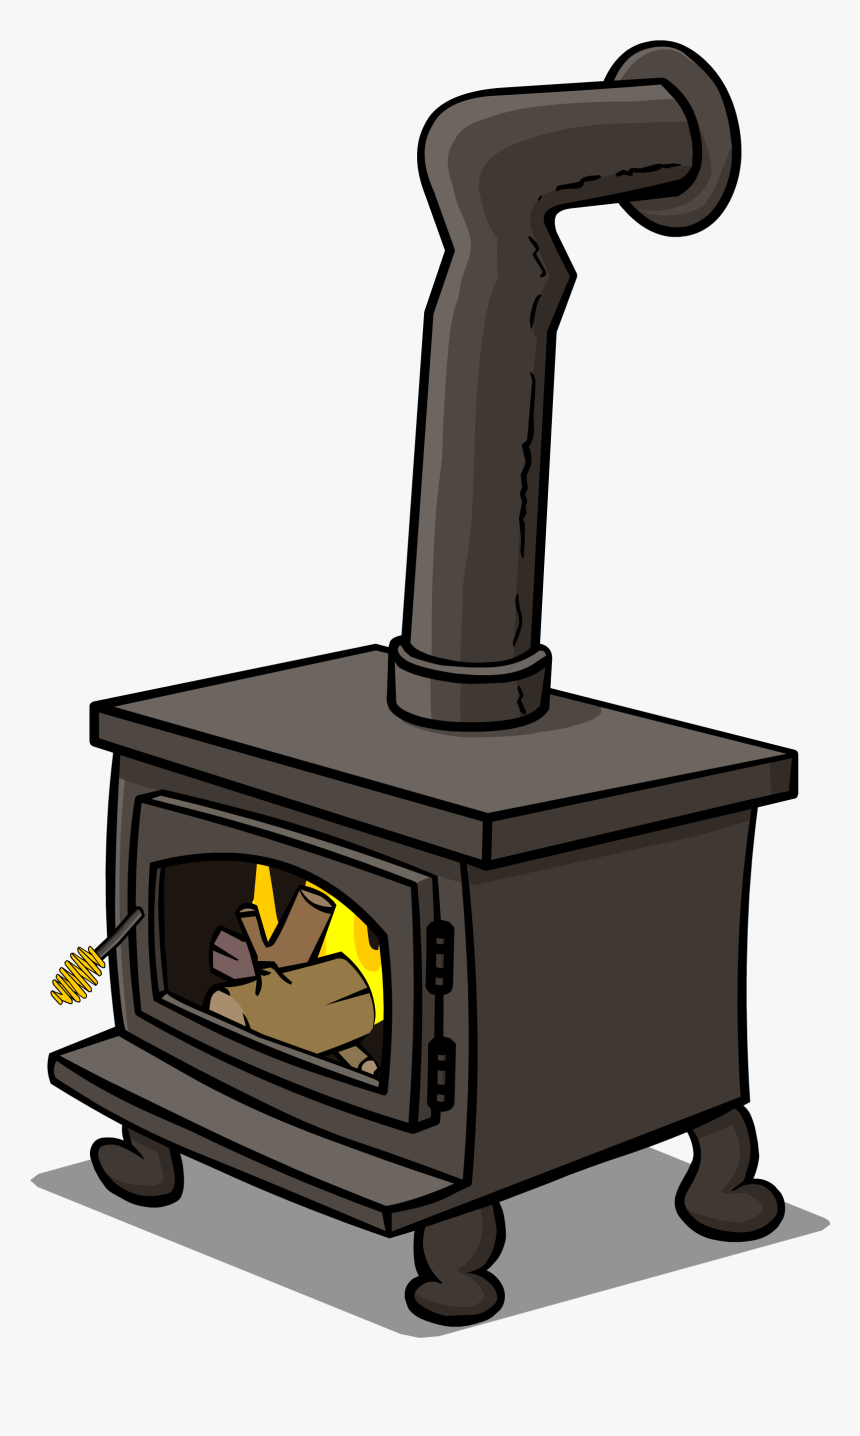 Wood Stove Png - Old Wood Burning Stove Png, Transparent Png, Free Download